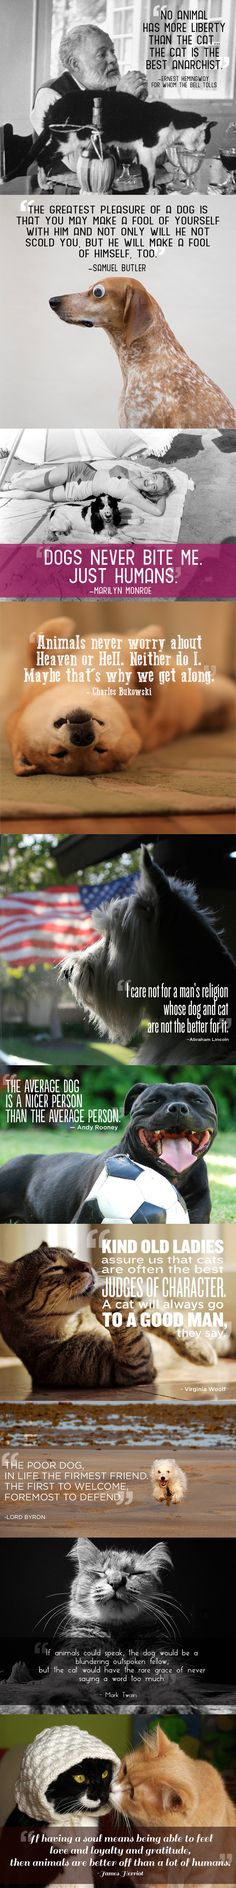 Quotes about pets that'll make you want to hug yours. <3